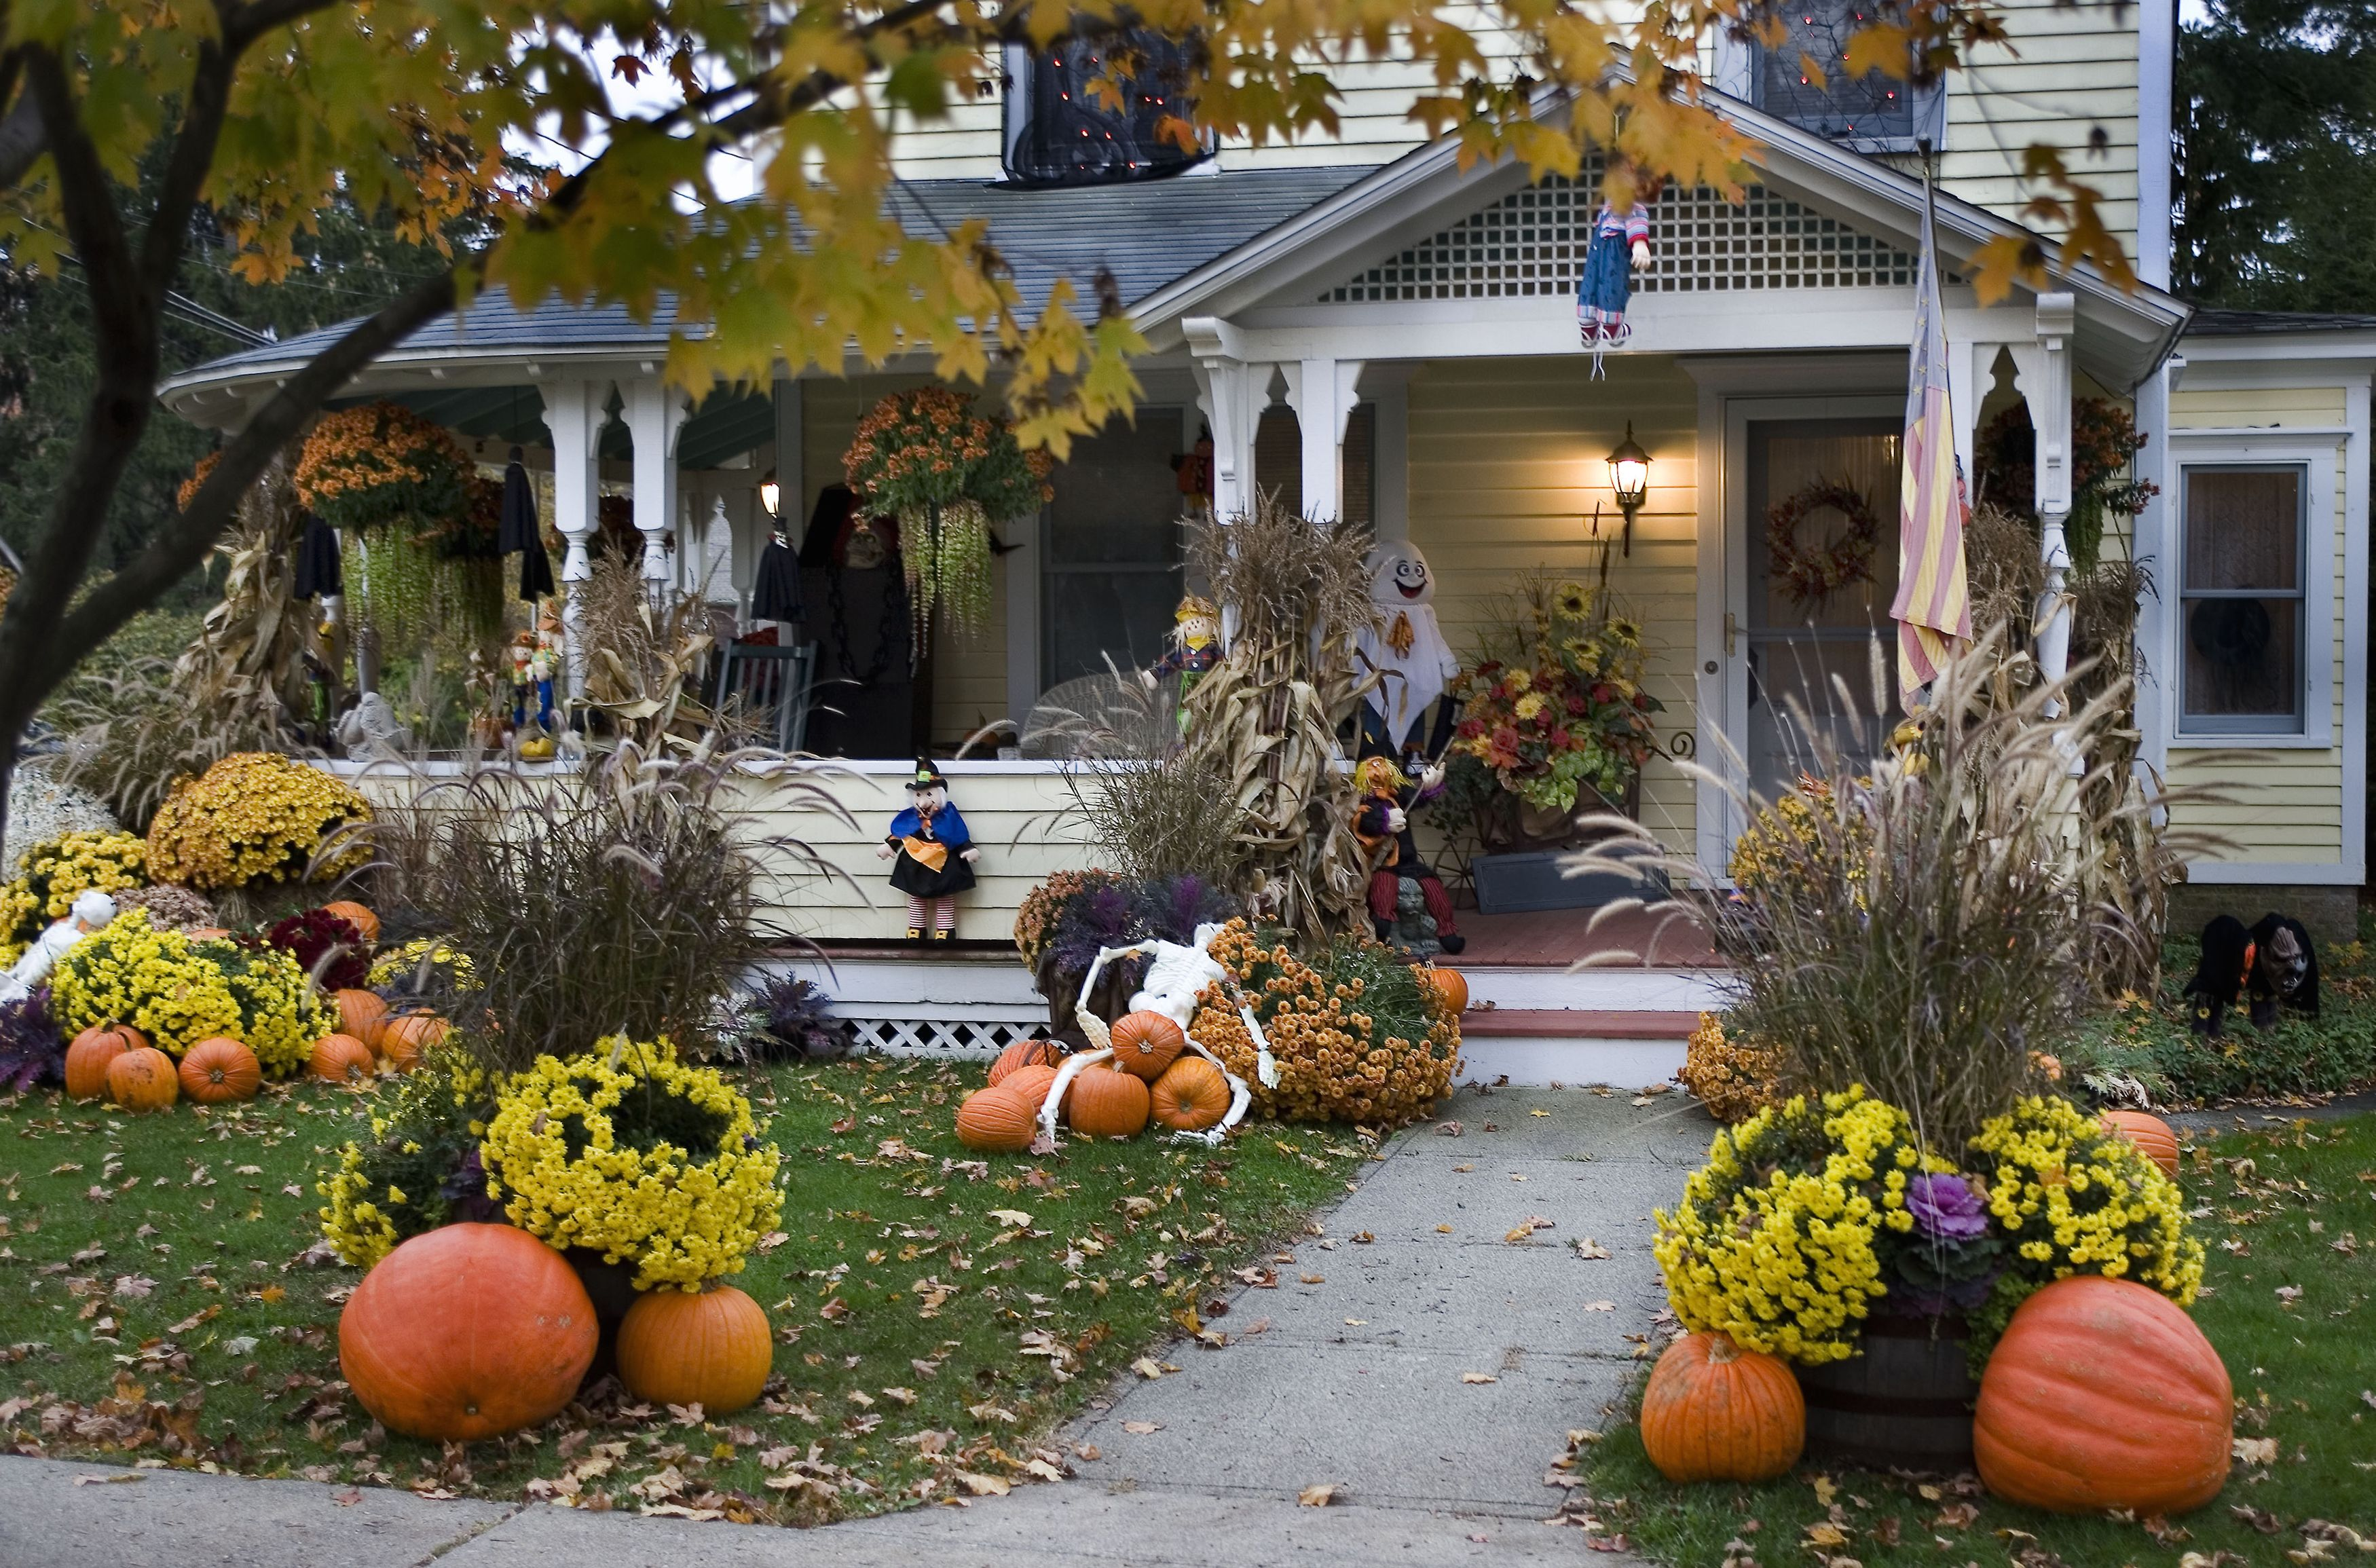 10 Best Outdoor Halloween Decorations - Porch Decor Ideas for Halloween